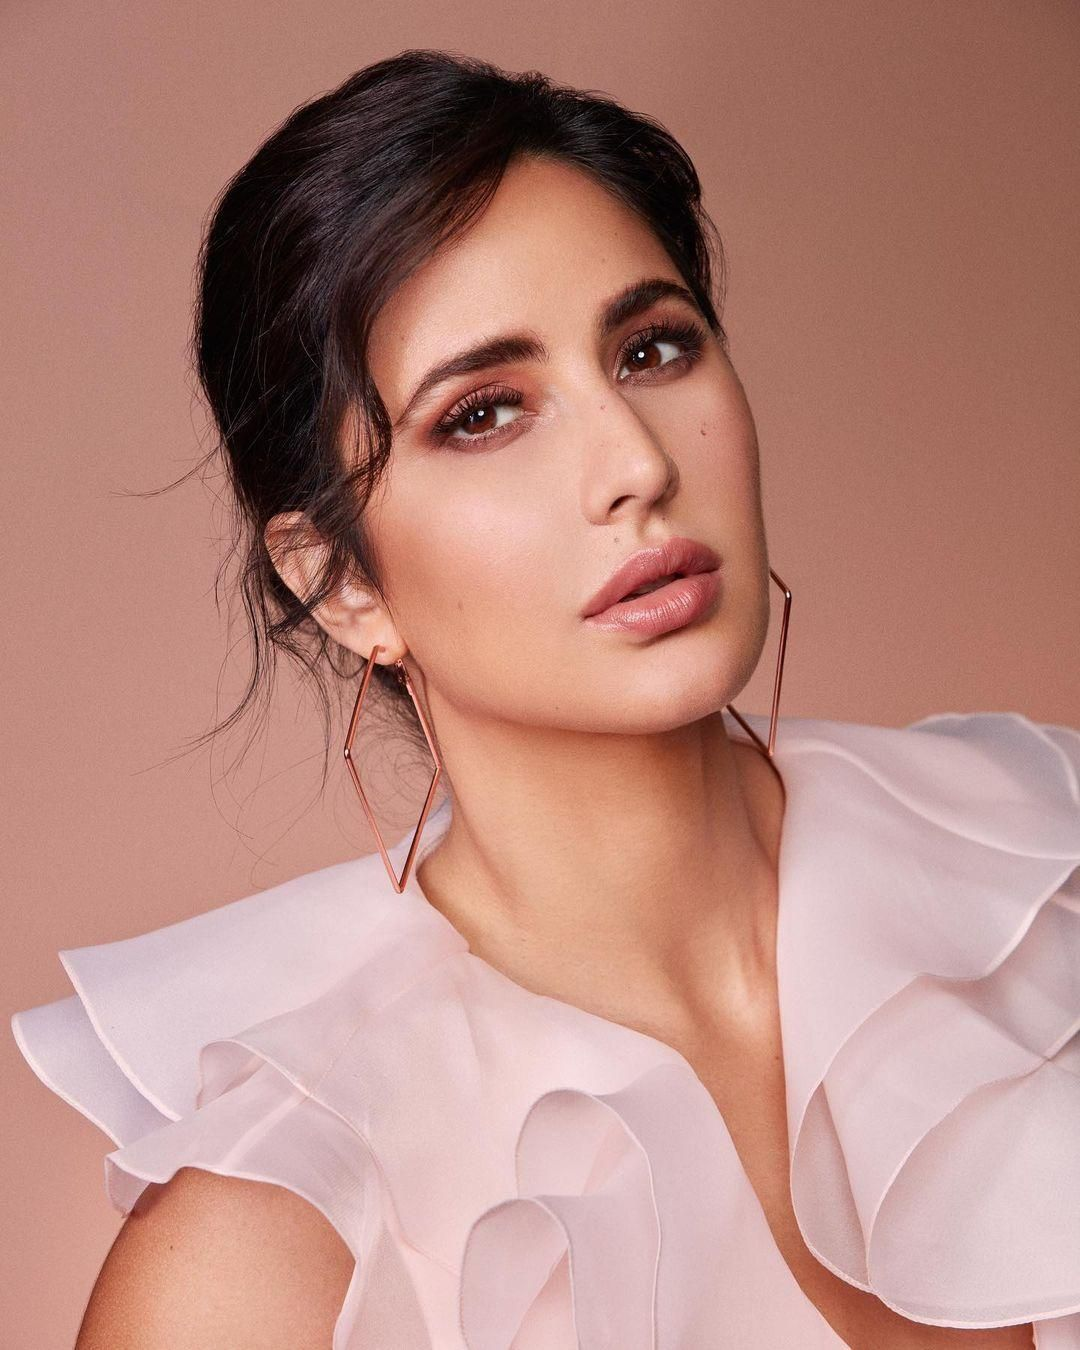 390 Katrina Kaif Images Hd Photos 1080p Wallpapers Android Iphone 2021